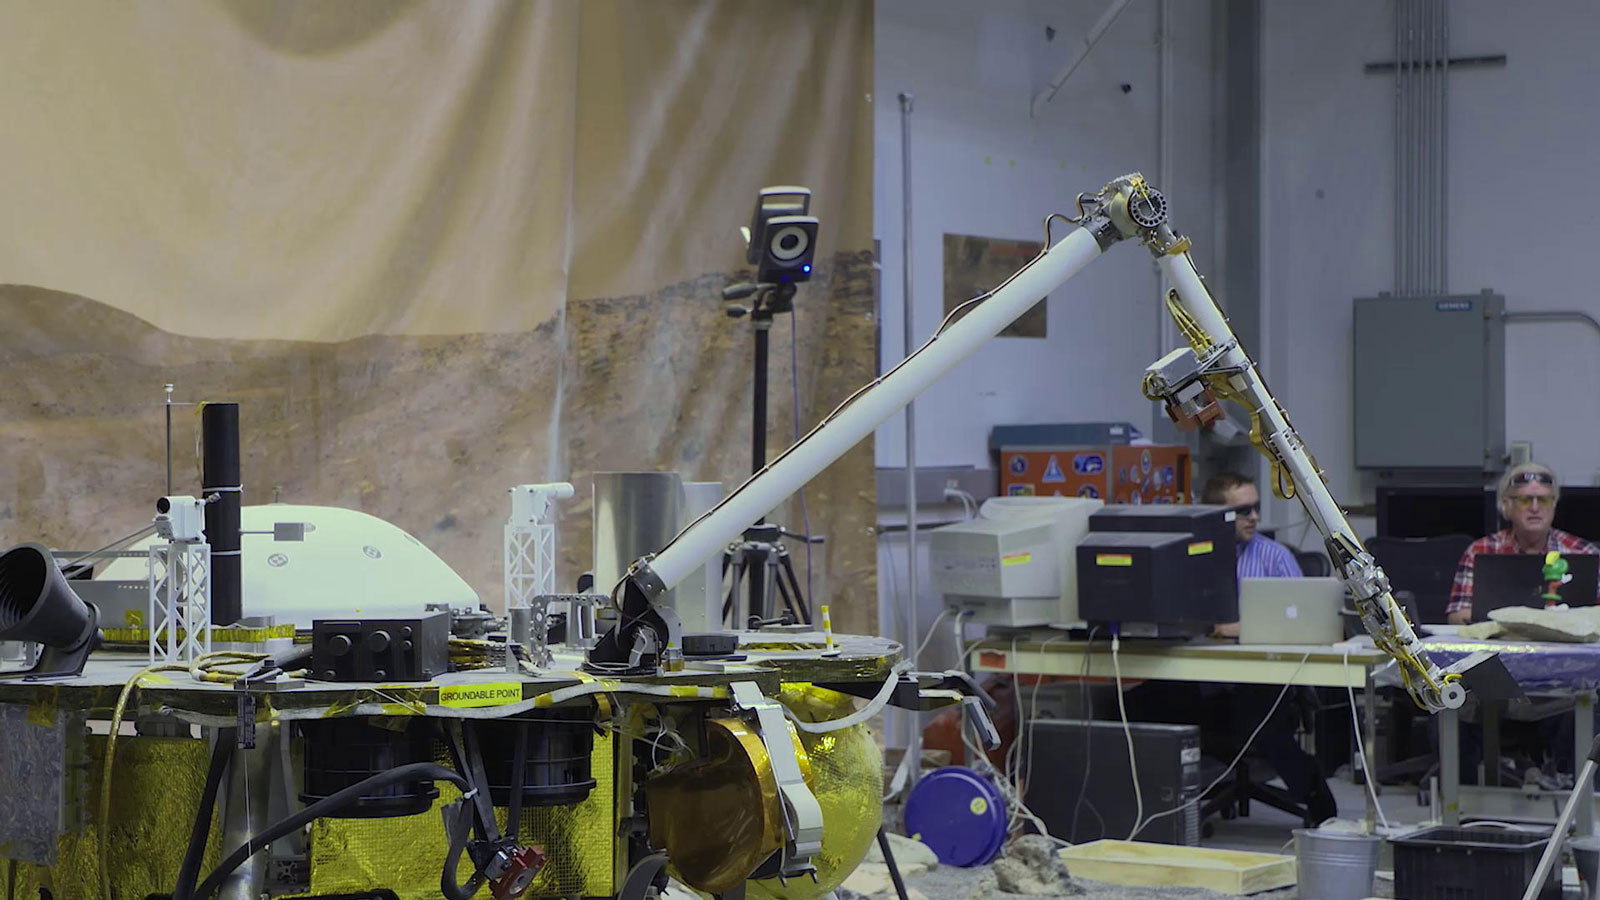 slide 1 - NASA's InSight mission tests an engineering version of the spacecraft's robotic arm in a Mars-like environment at NASA's Jet Propulsion Laboratory.